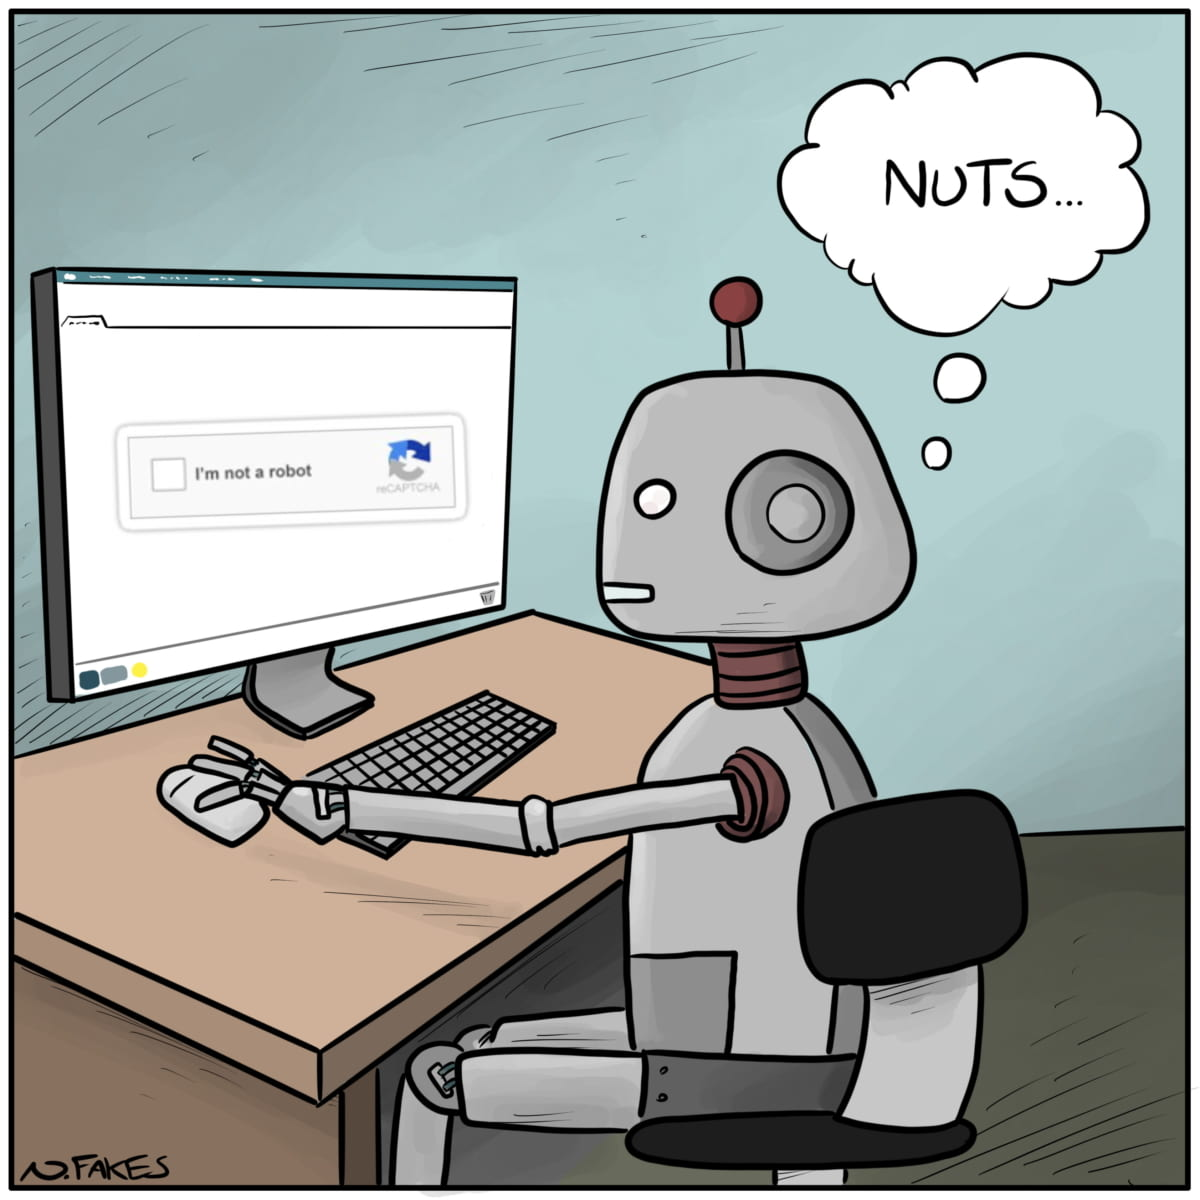 Funny image of a robot trying to do a captcha